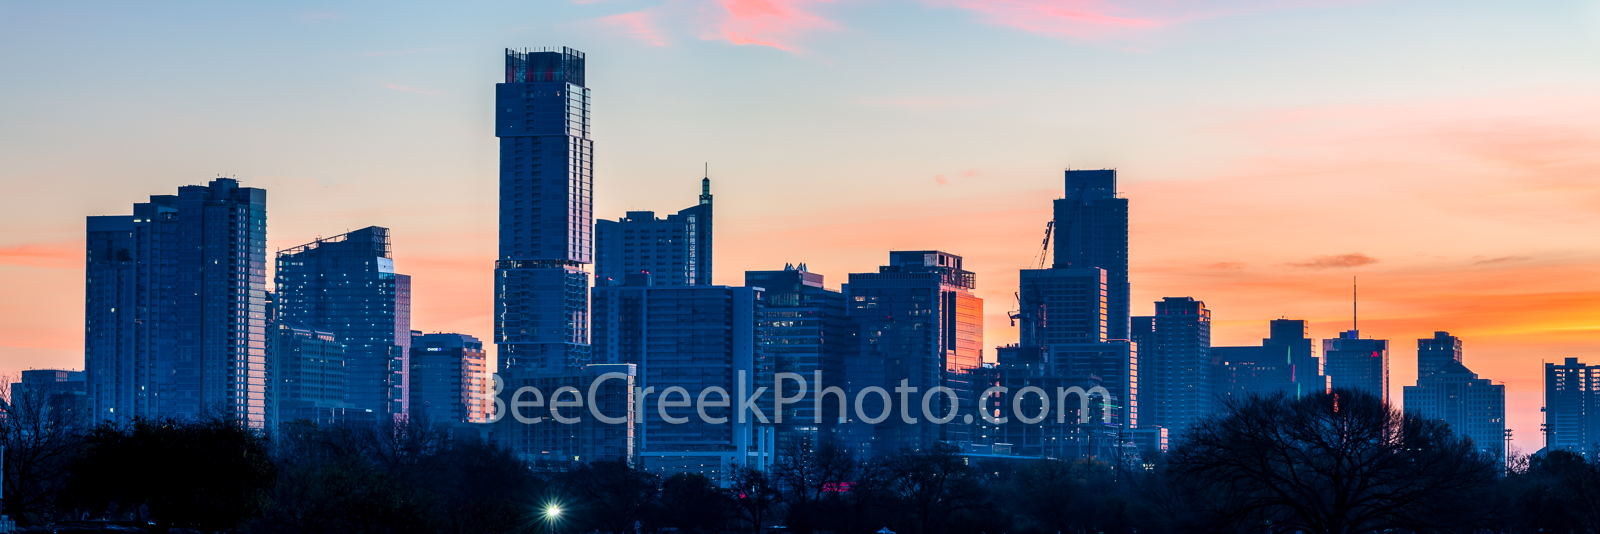 Austin Sunrise Skyline From Zilker Park Pano - We captured this image of the Austin Downtown skyline panorama right at sunrise...